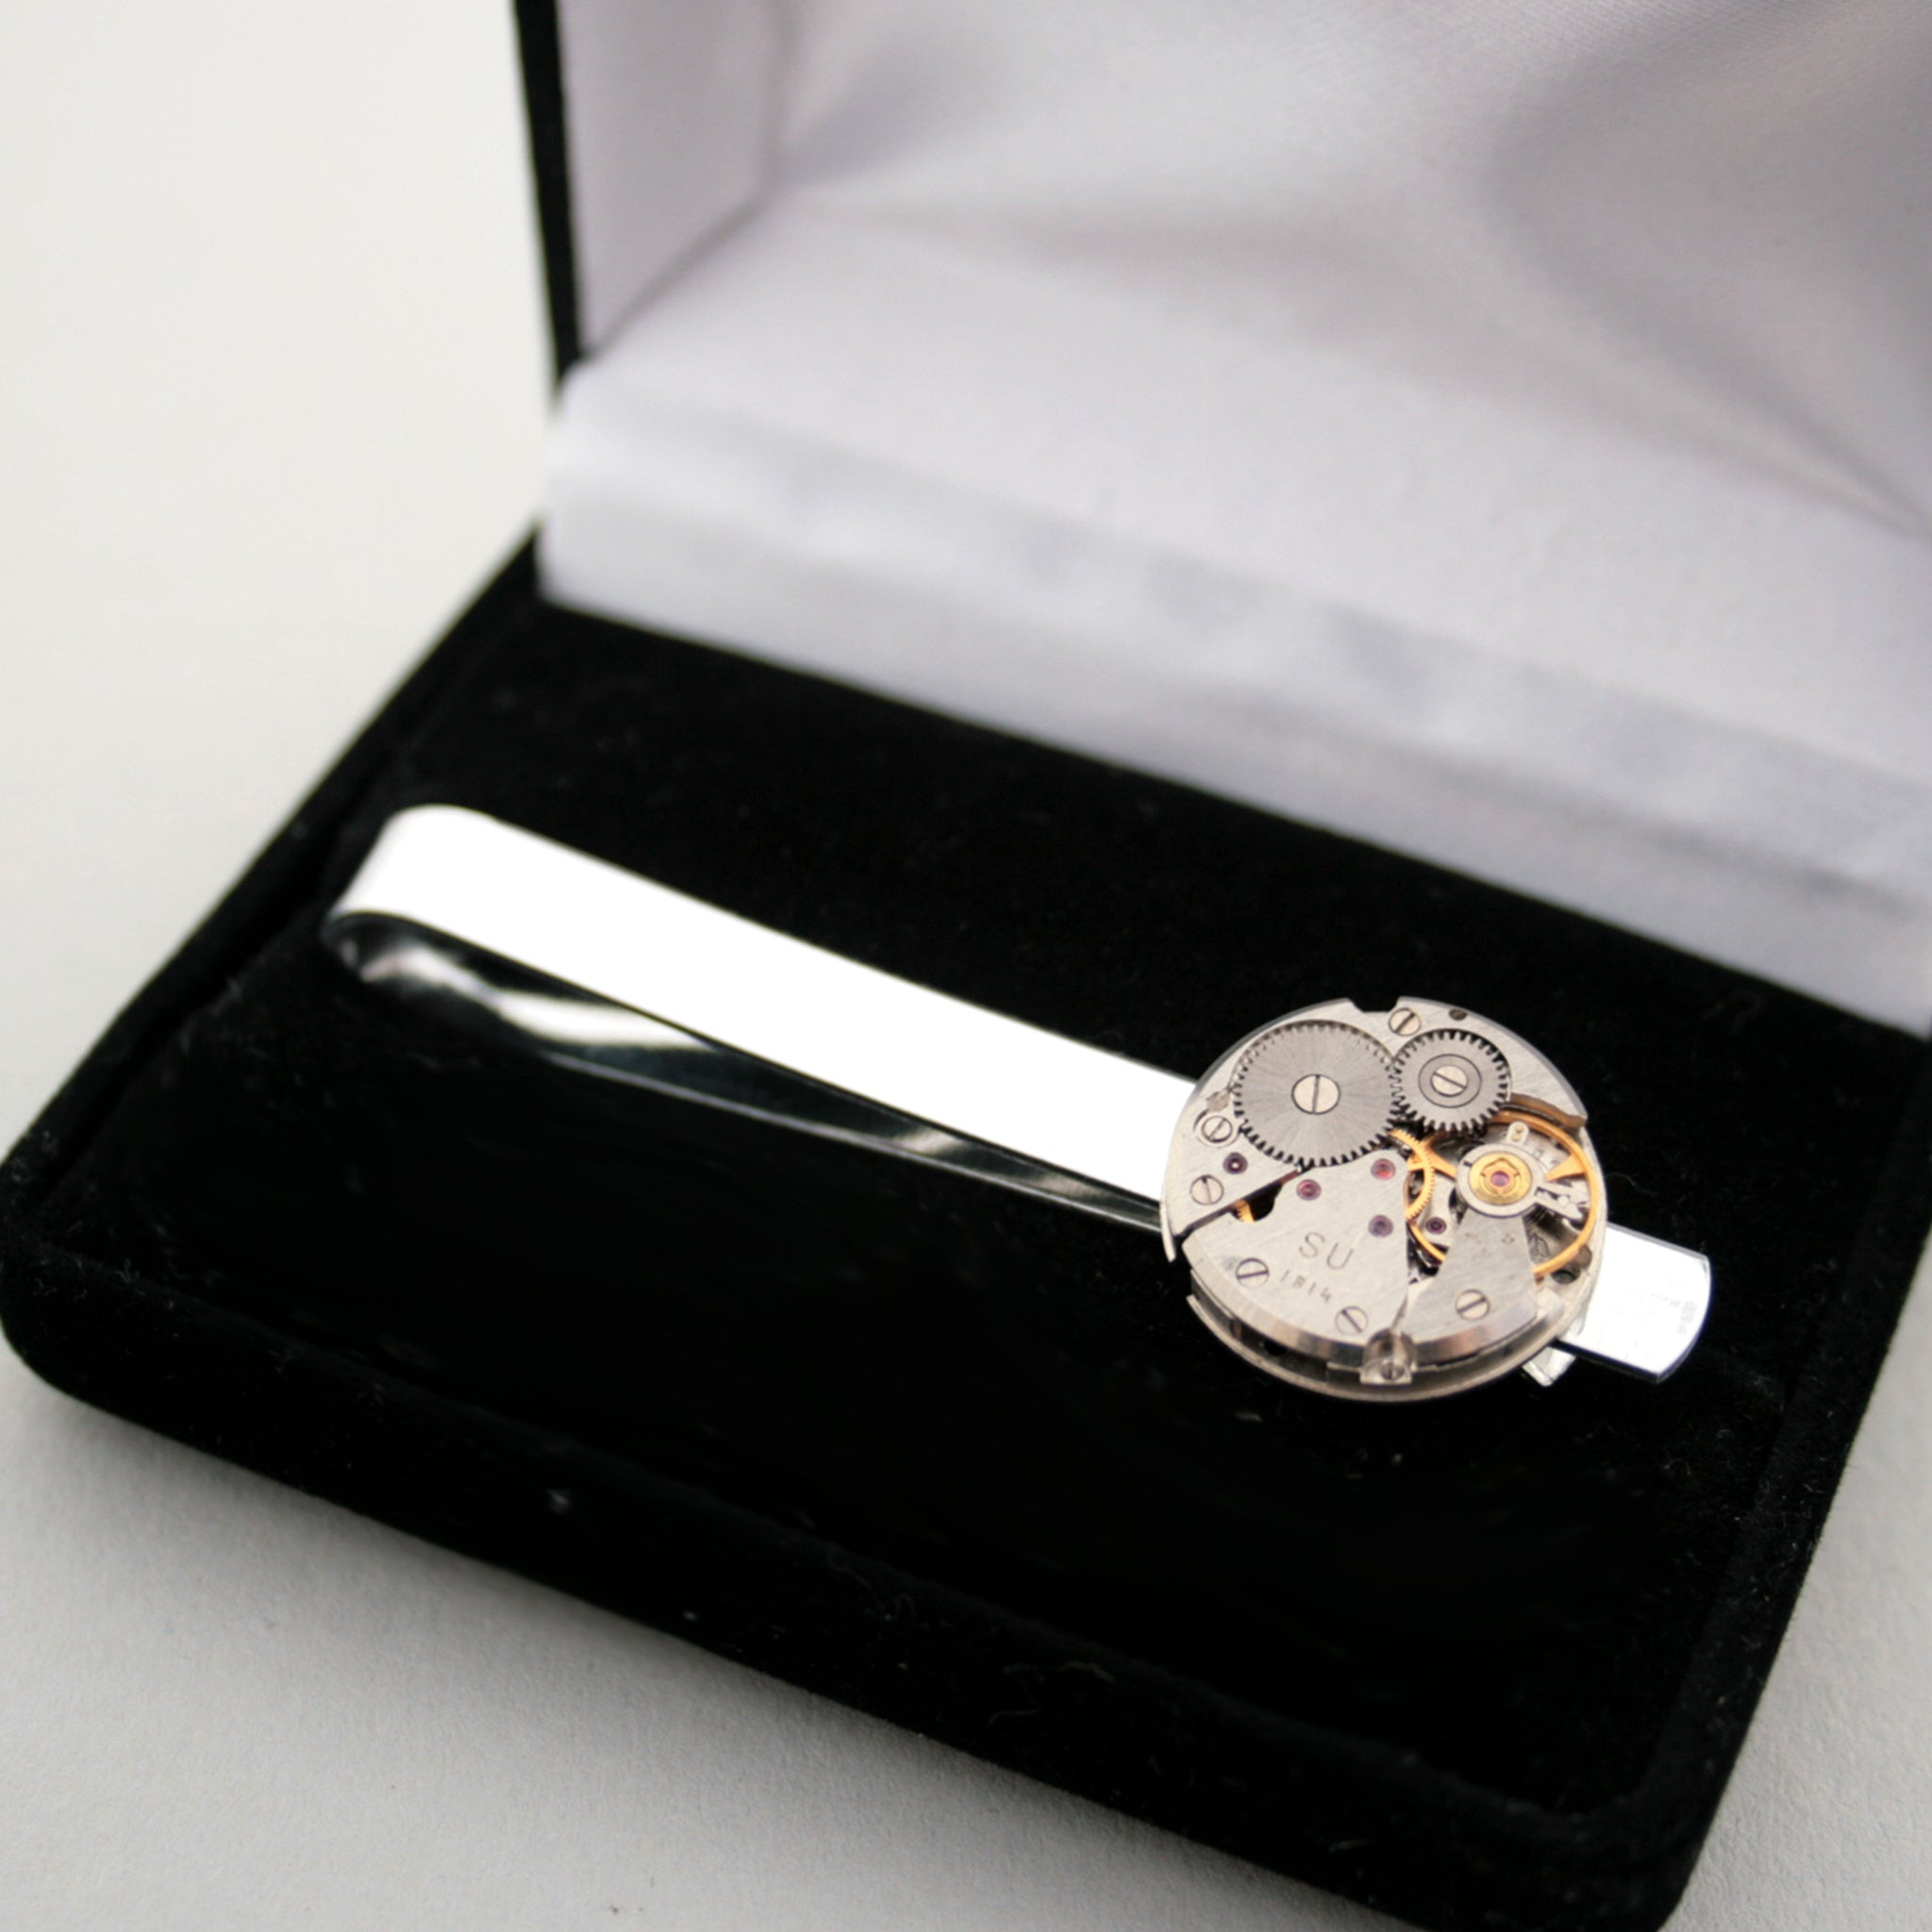 Steampunk Watch Movement Tie Clip in presentation box